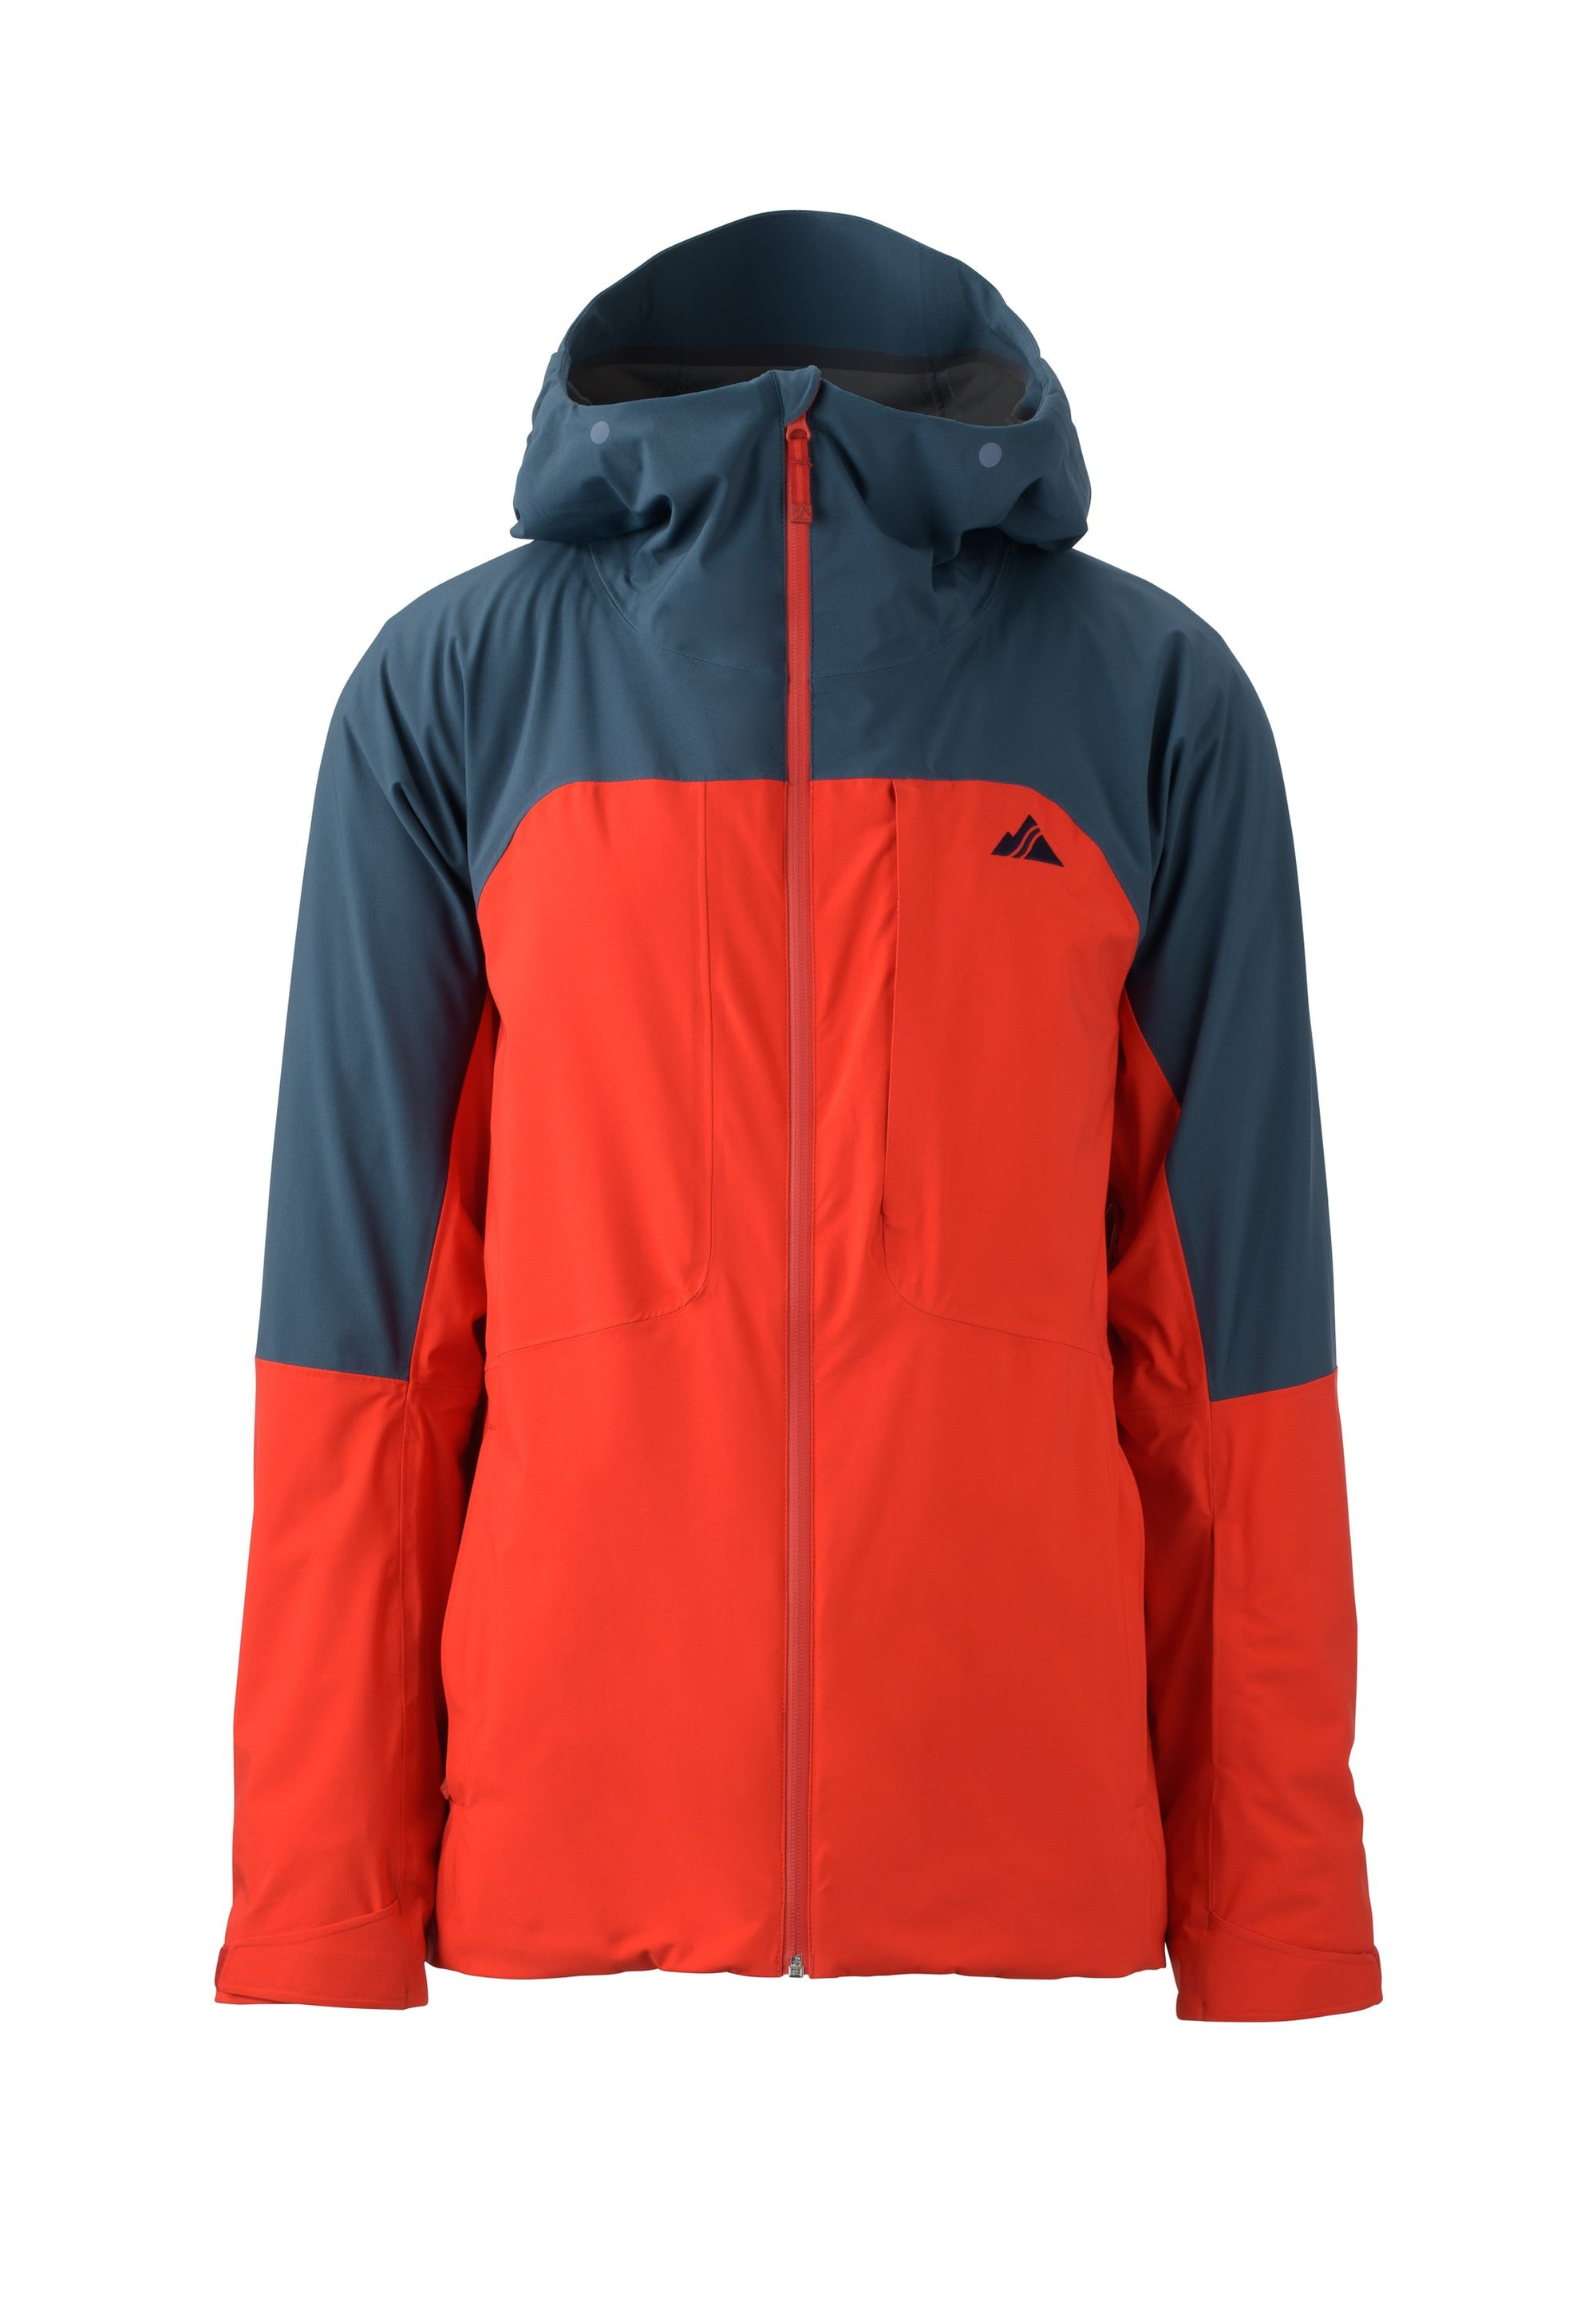 fire red 2019 men's ozone insulated skiing and snowboarding jacket from strafe outerwear